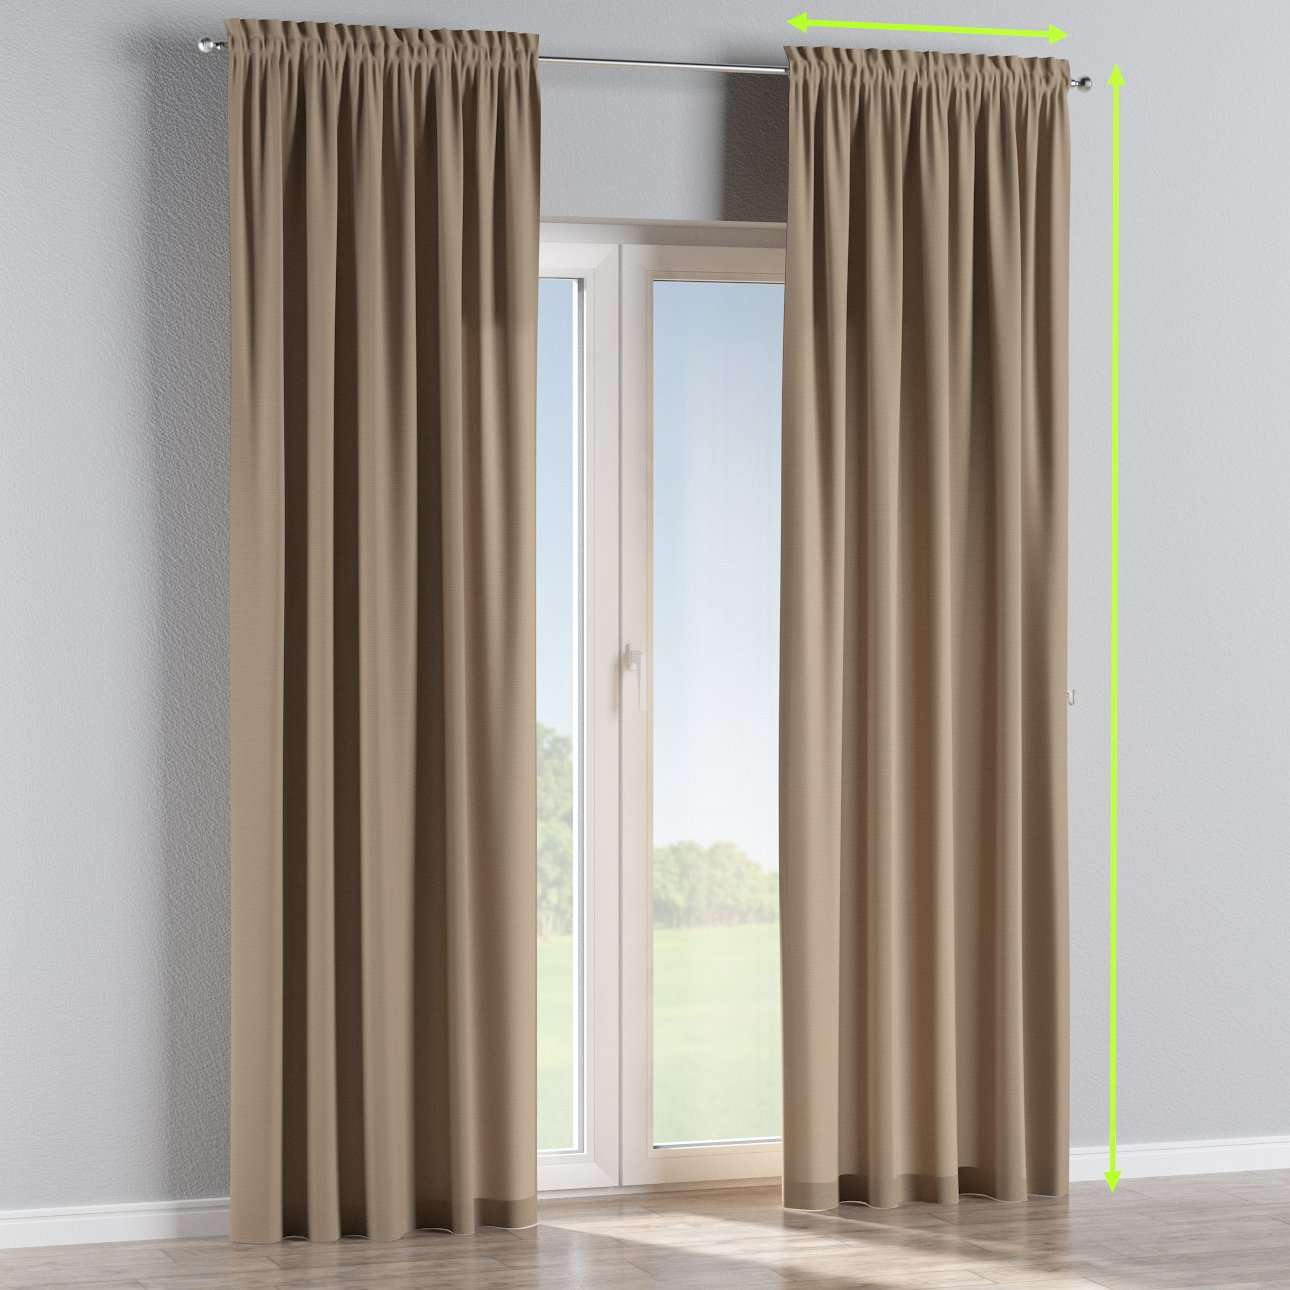 Slot and frill curtains in collection Cotton Panama, fabric: 702-28